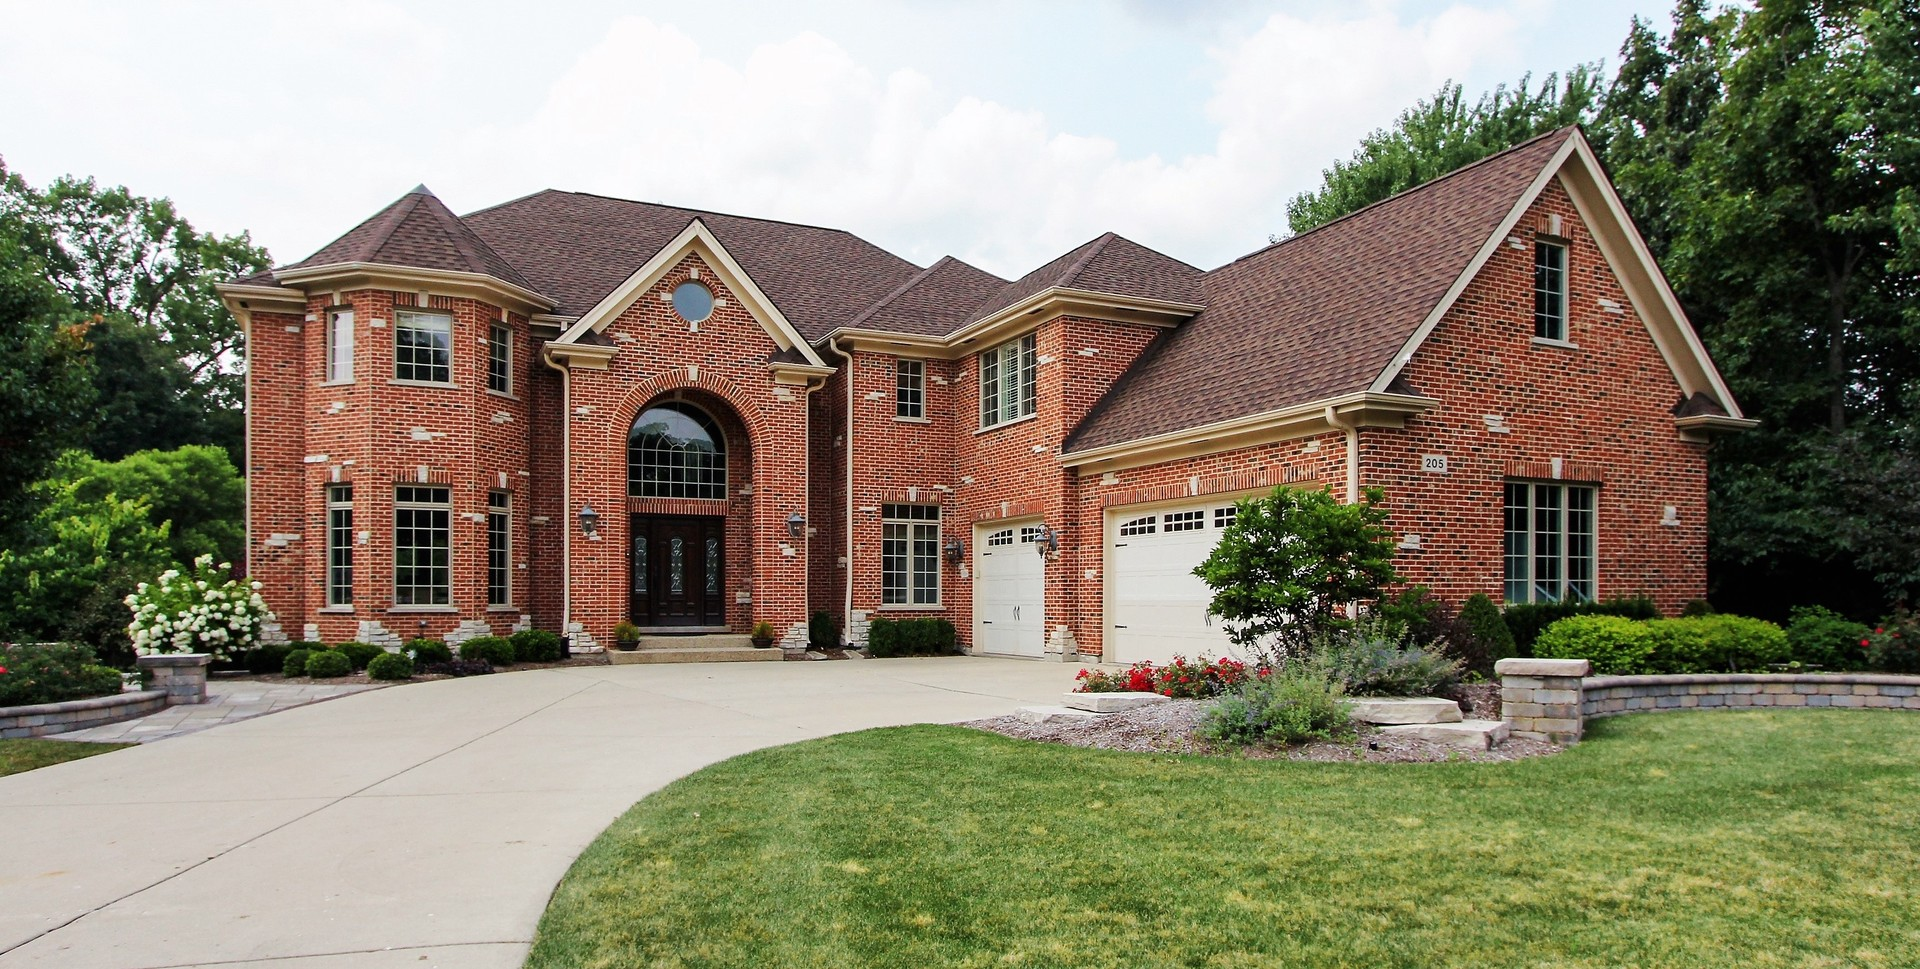 205 Beech Drive, Lake Zurich, Illinois 60047